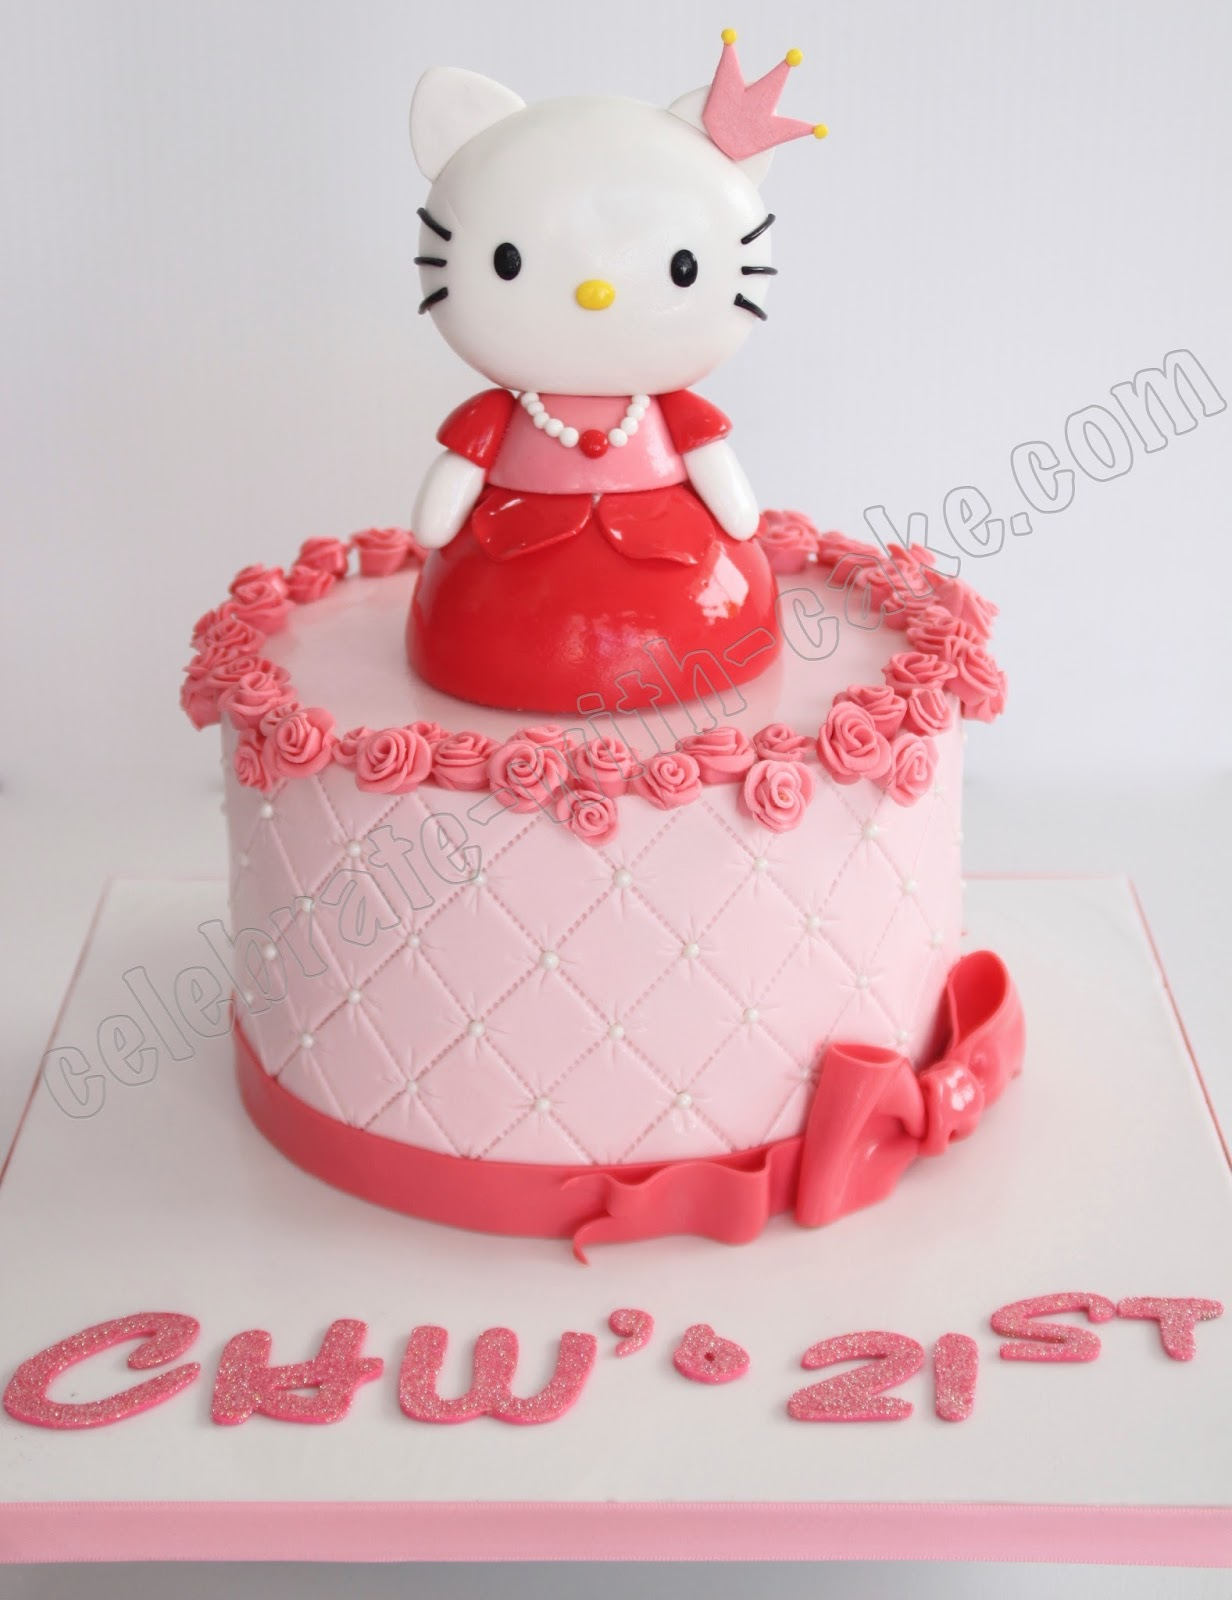 Celebrate with Cake!: 21st Birthday Princess Hello Kitty Cake